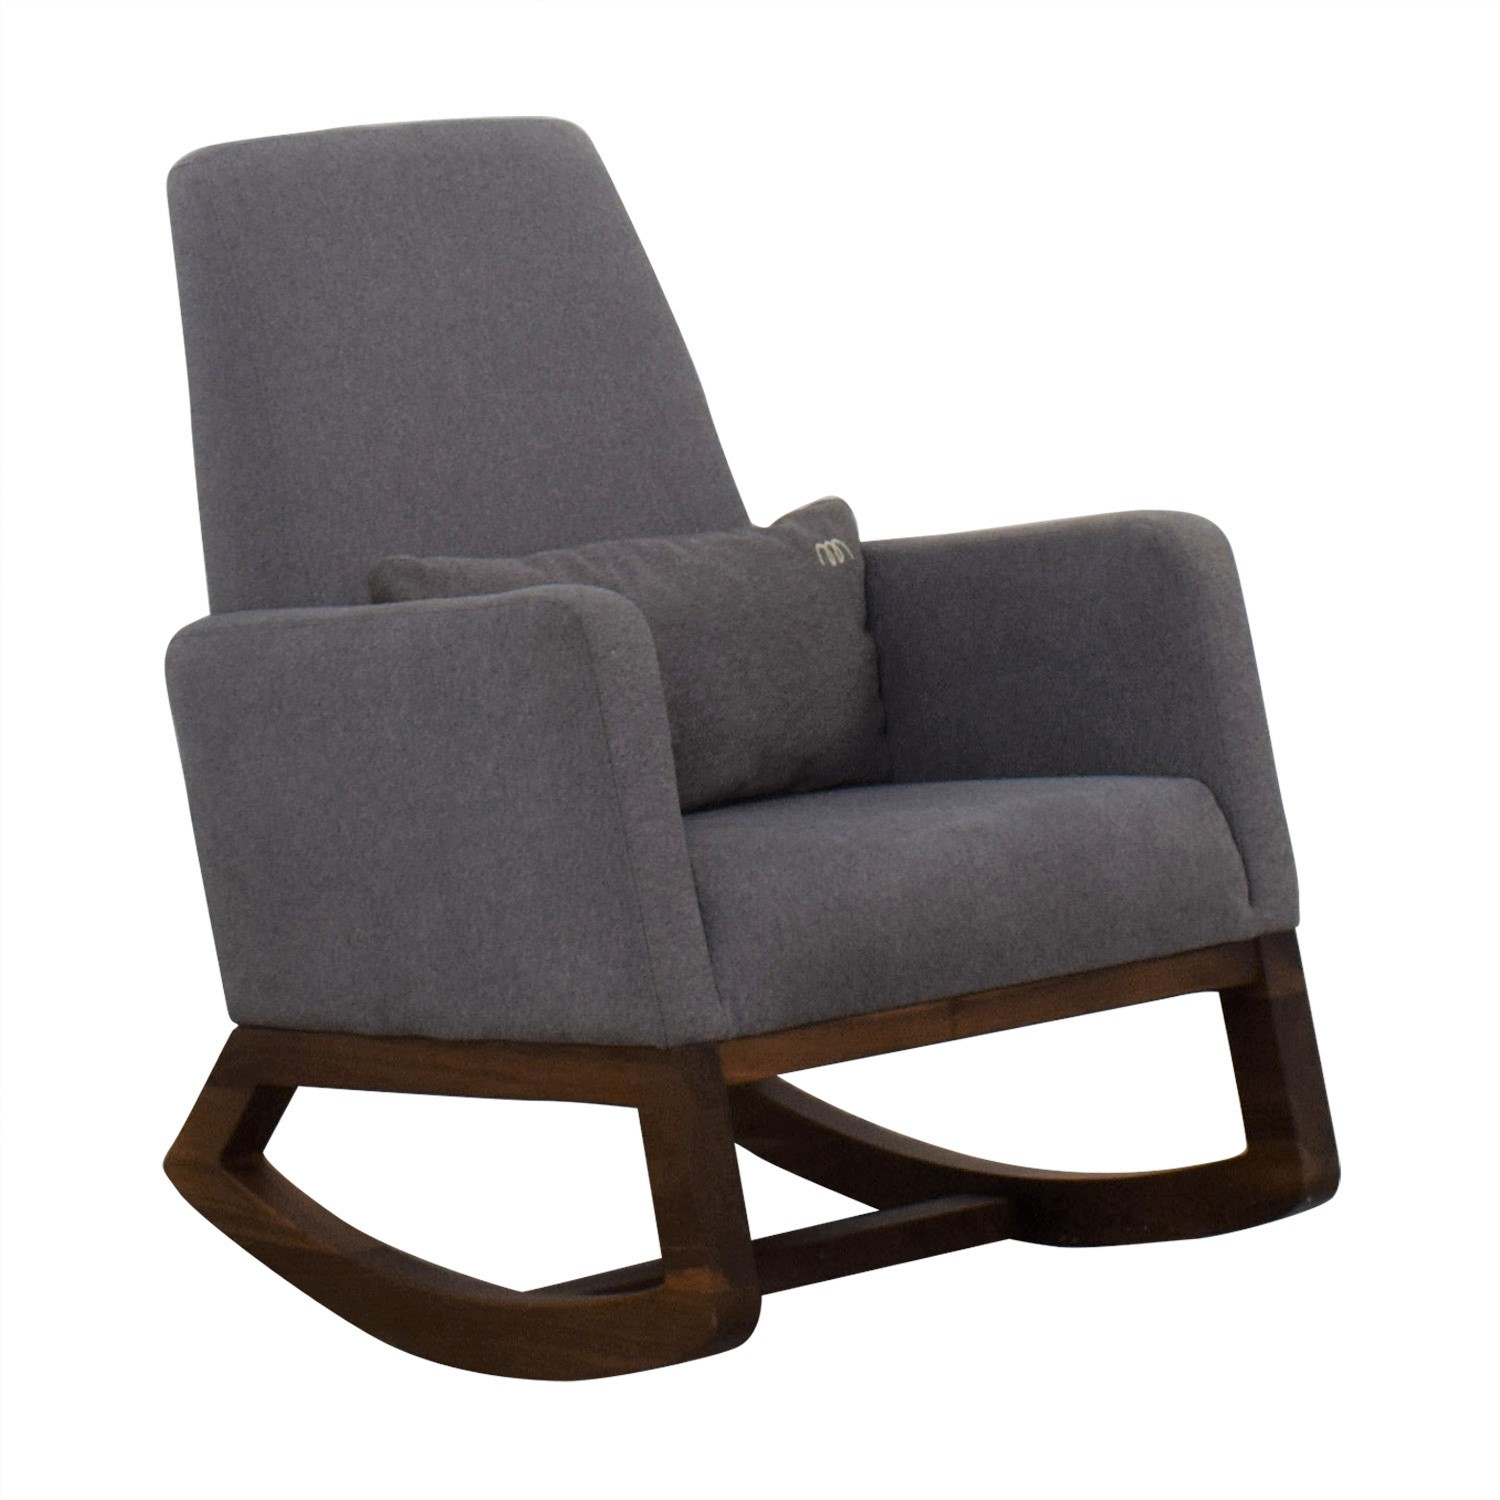 buy Monte Design Joya Rocker Accent Chair Monte Design